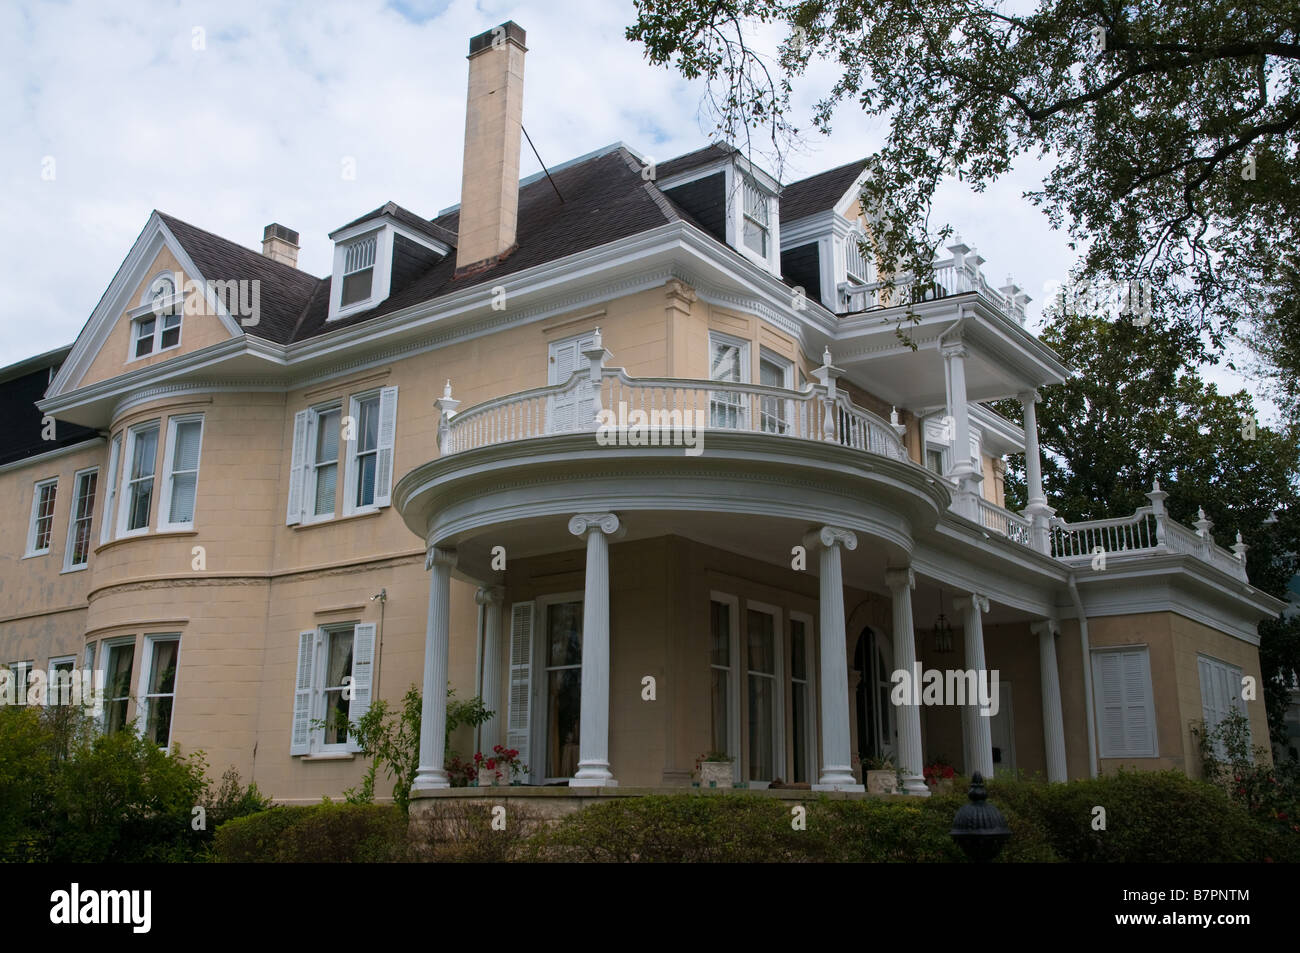 Examples Of New Orleans Architecture In The Garden District Stock Photo Royalty Free Image